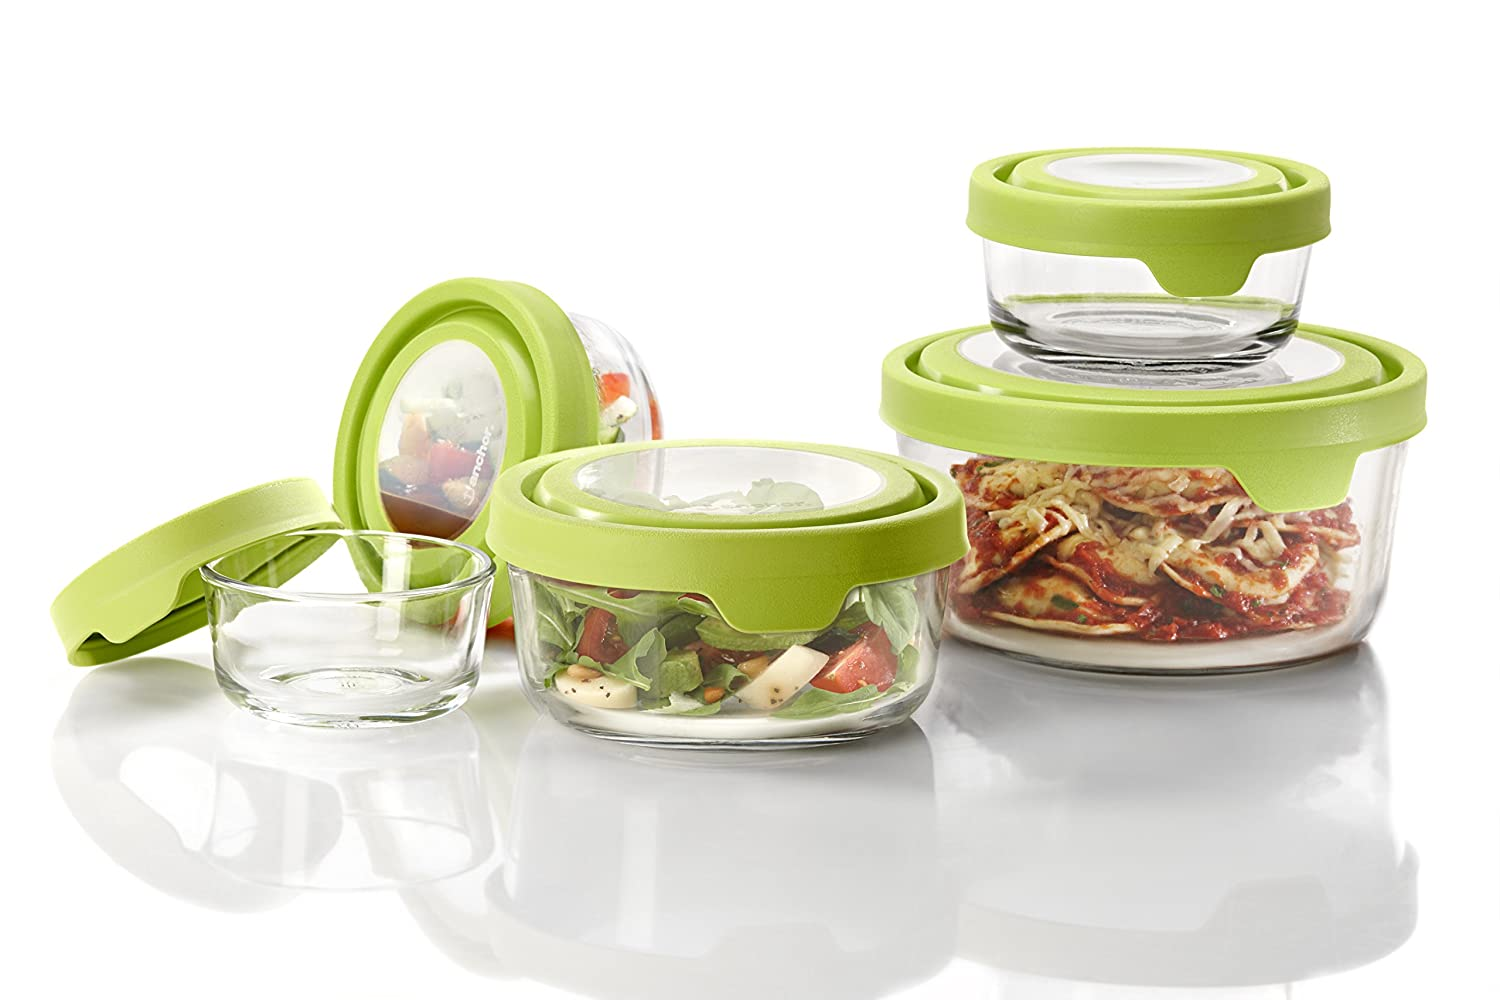 Anchor Hocking TrueSeal Glass Food Storage Containers with Lids, Green, 10-Piece Set